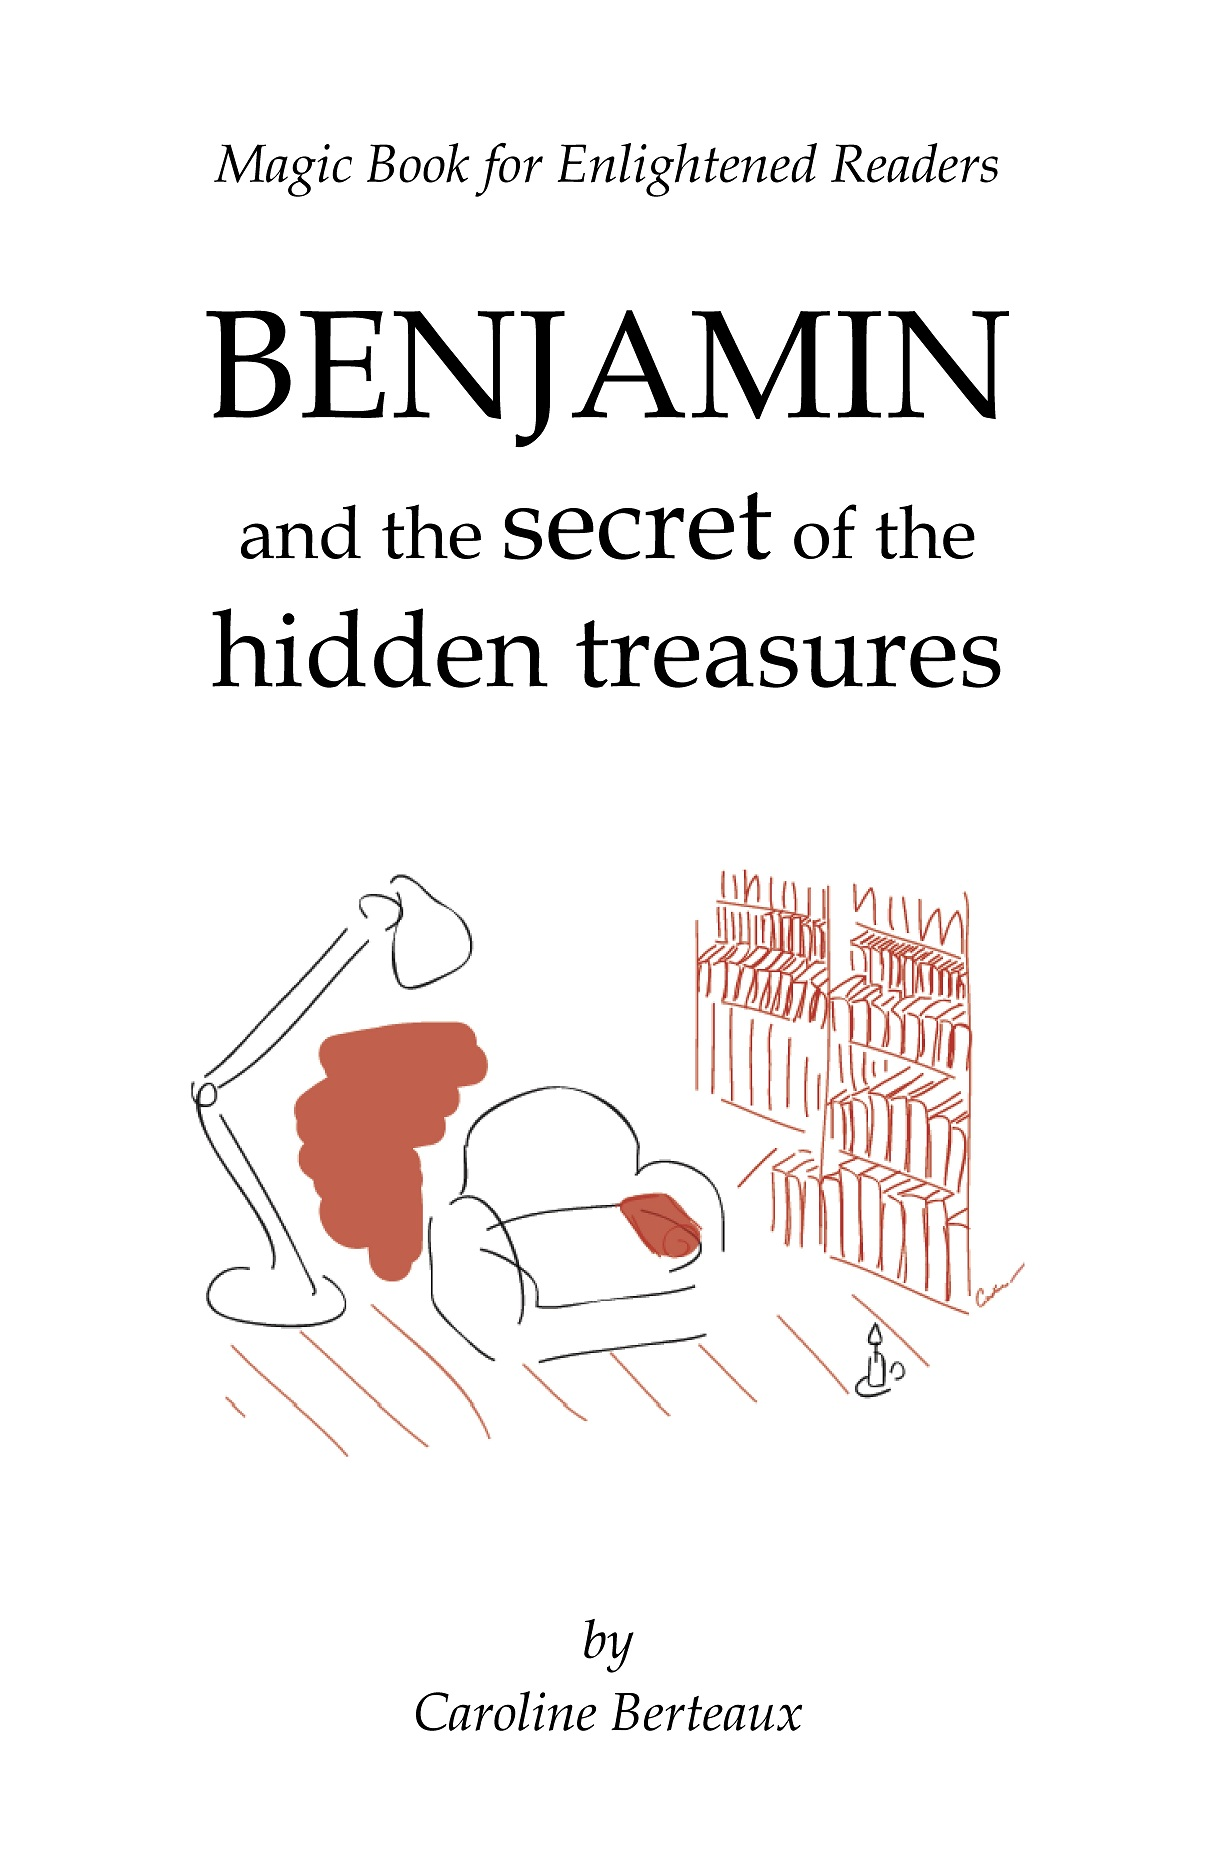 Benjamin and the Secret of the Hidden Treasures